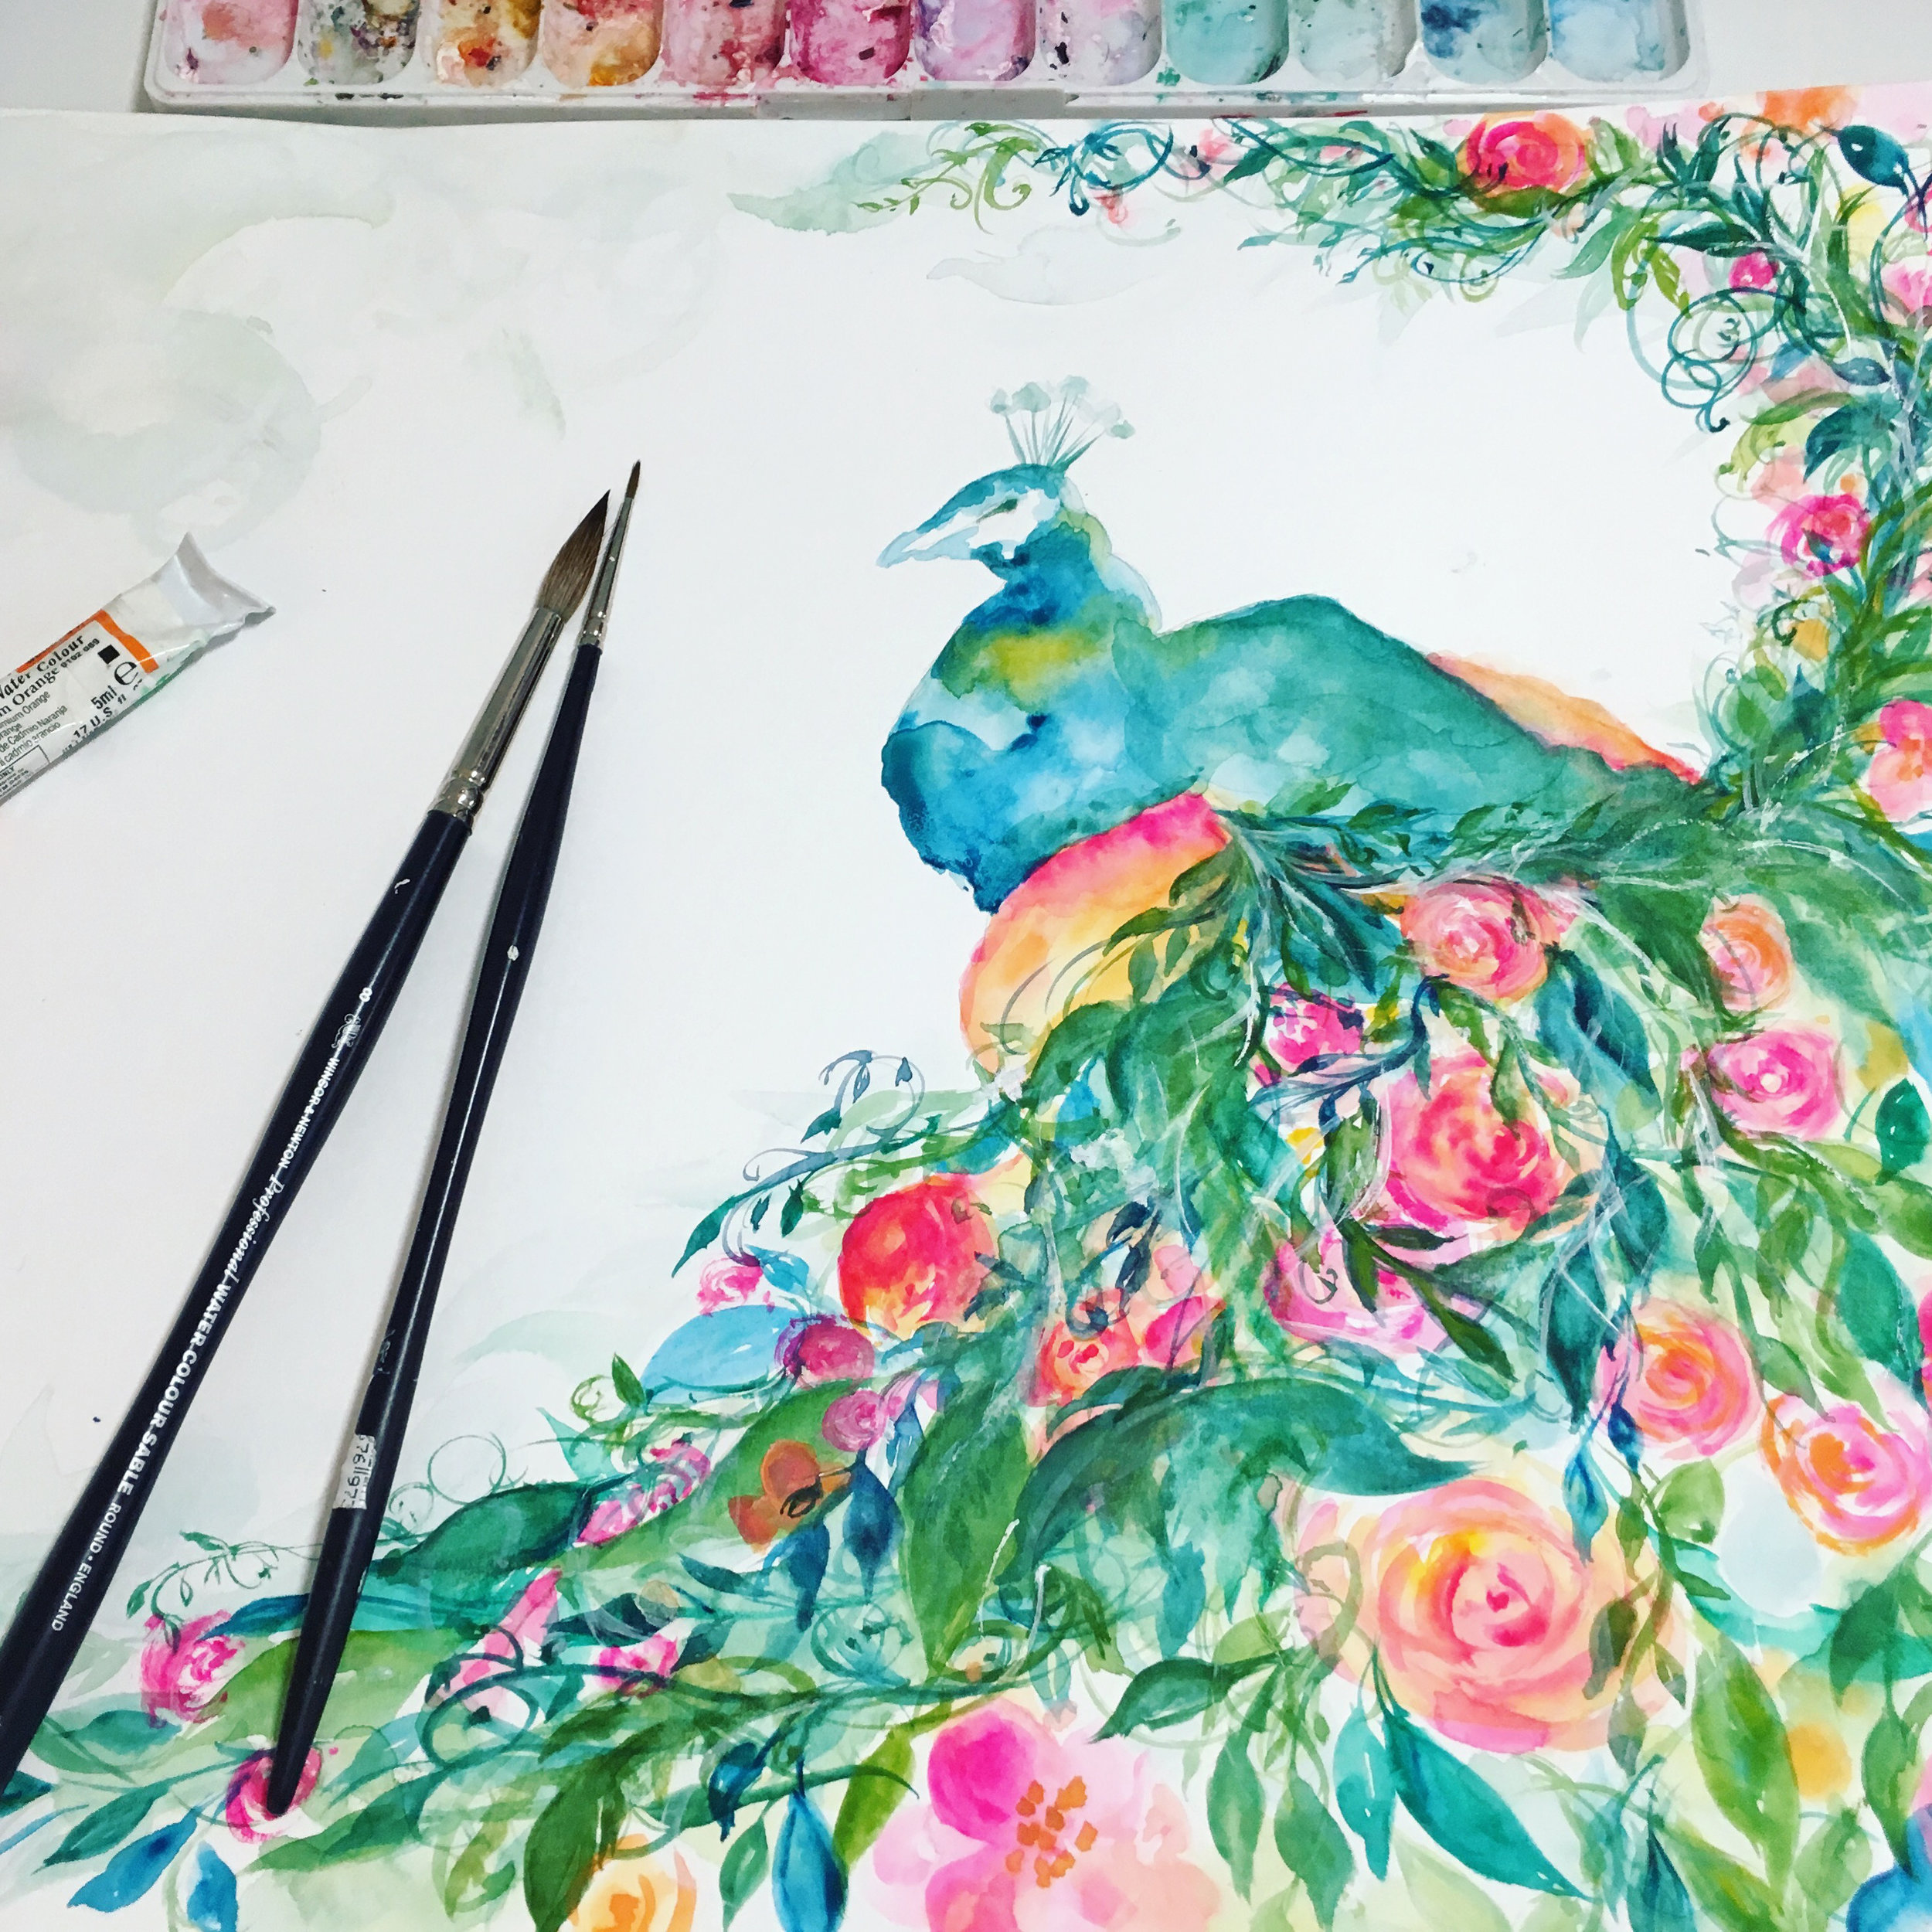 peacock and brushes.jpg